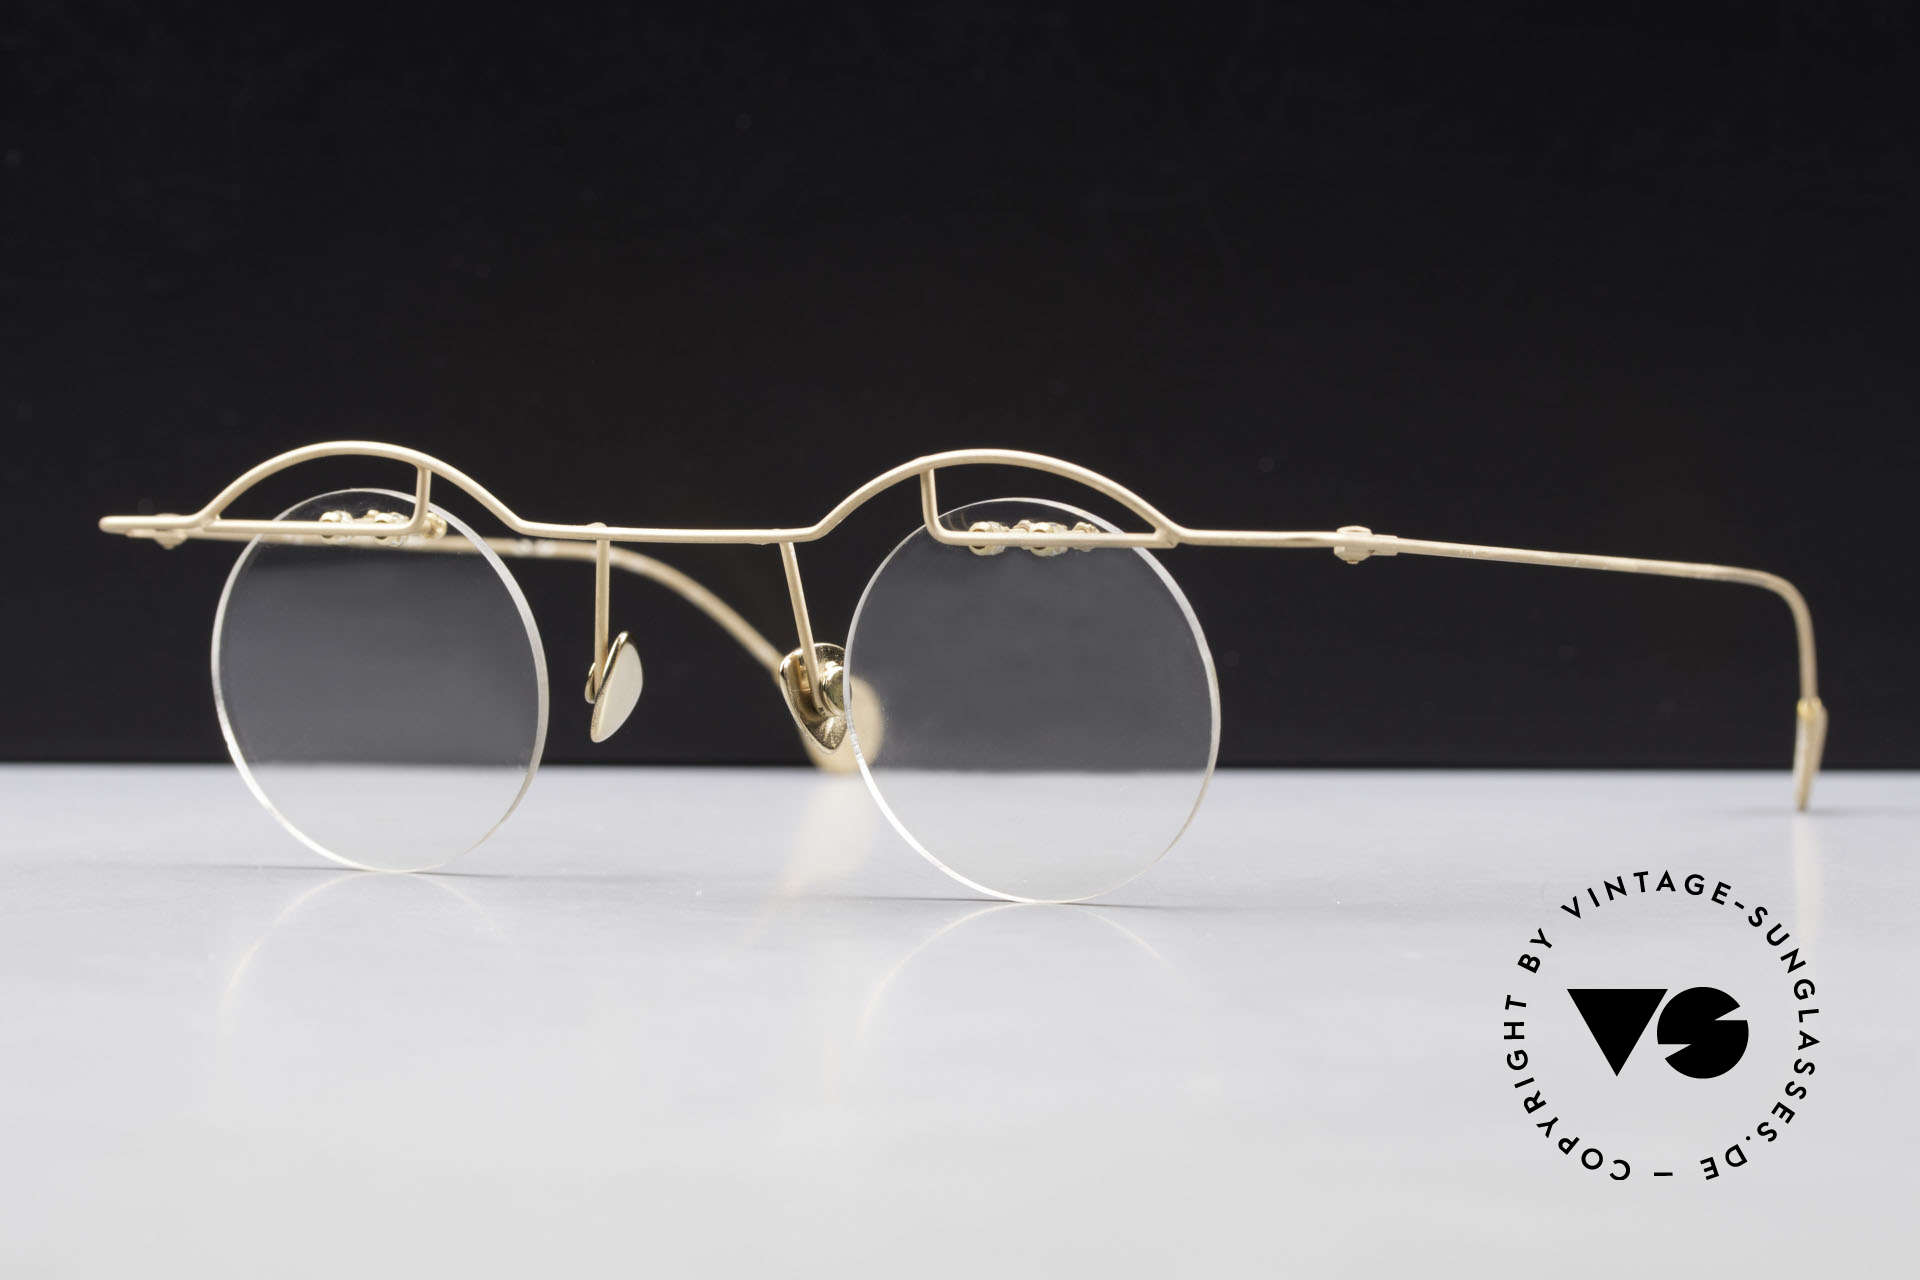 Paul Chiol 02 Bauhaus Eyeglasses Rimless, filigree and cleverly devised design; simply chichi, Made for Men and Women